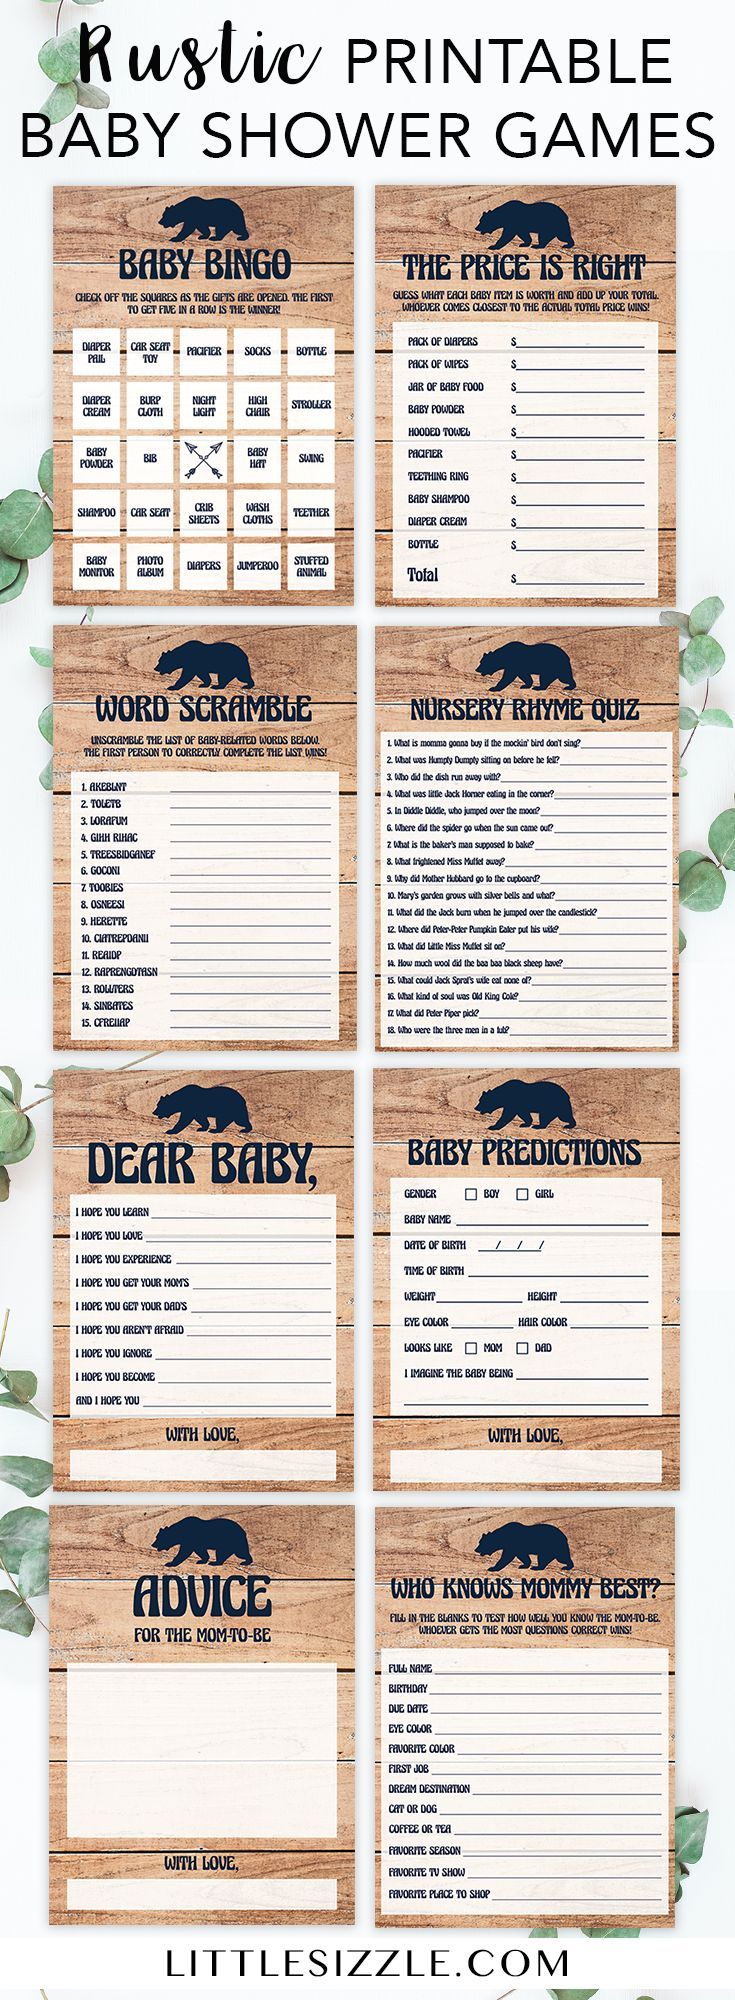 Rustic baby shower games by LittleSizzle. Entertain your guests with this fun bundle of popular and easy games for your woodland baby shower. The wood background with navy baby bear is perfect to celebrate the parents-to-be new adventure! The printable game package includes baby bingo, price is right, word scramble, wishes for baby, advice cards and more! #woodland #babyshowergames #rustic #babyshowerthemes #babybear #winter #babyshowerideas4u #DIY #printable #adventure #babybingo…